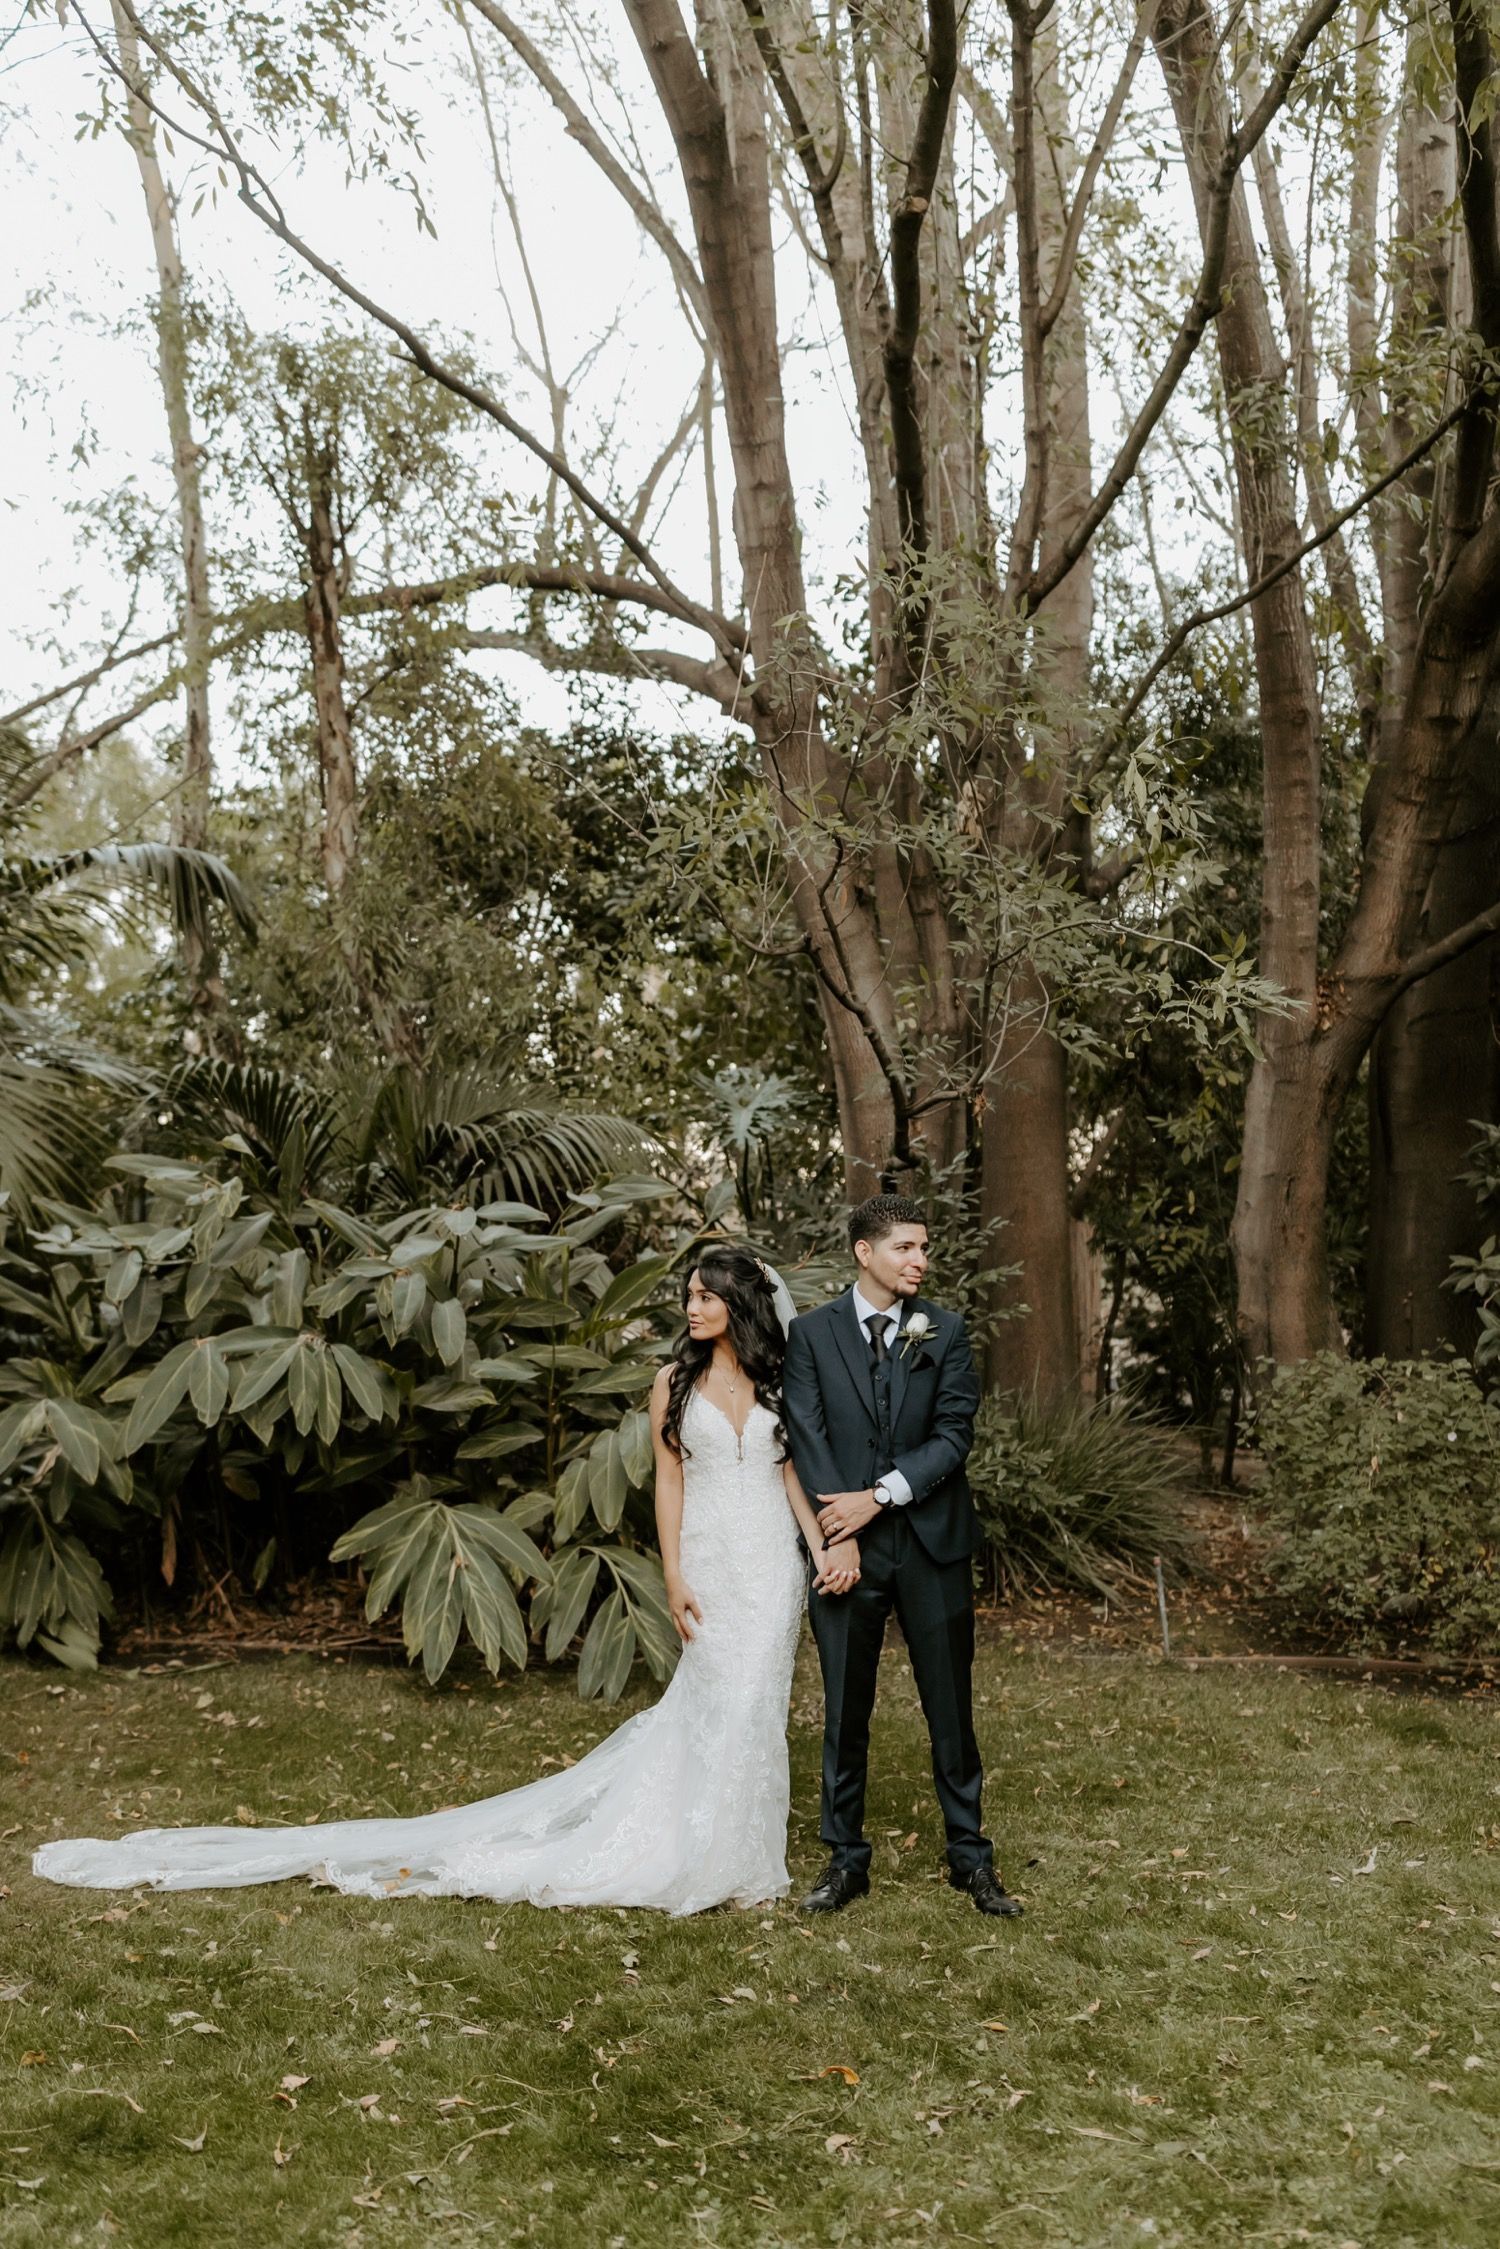 8 years late in a garden paradise | Forest wedding venue ...